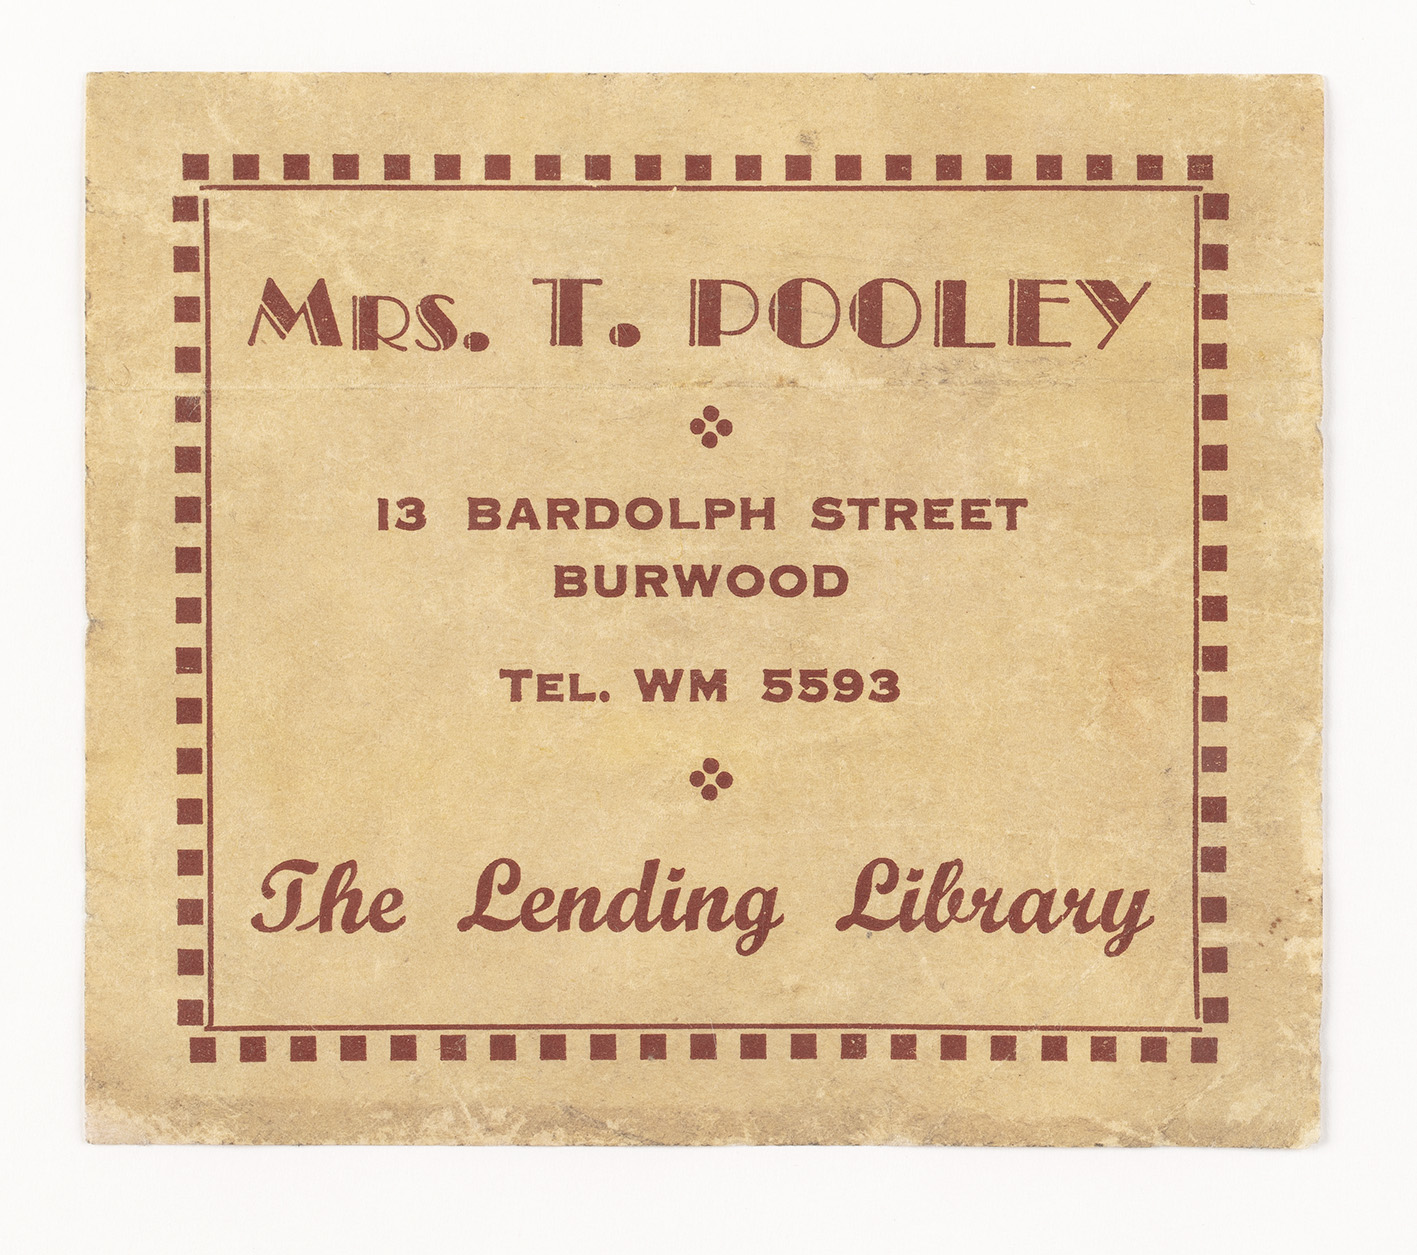 A bookplate showing the library ownership of the book.